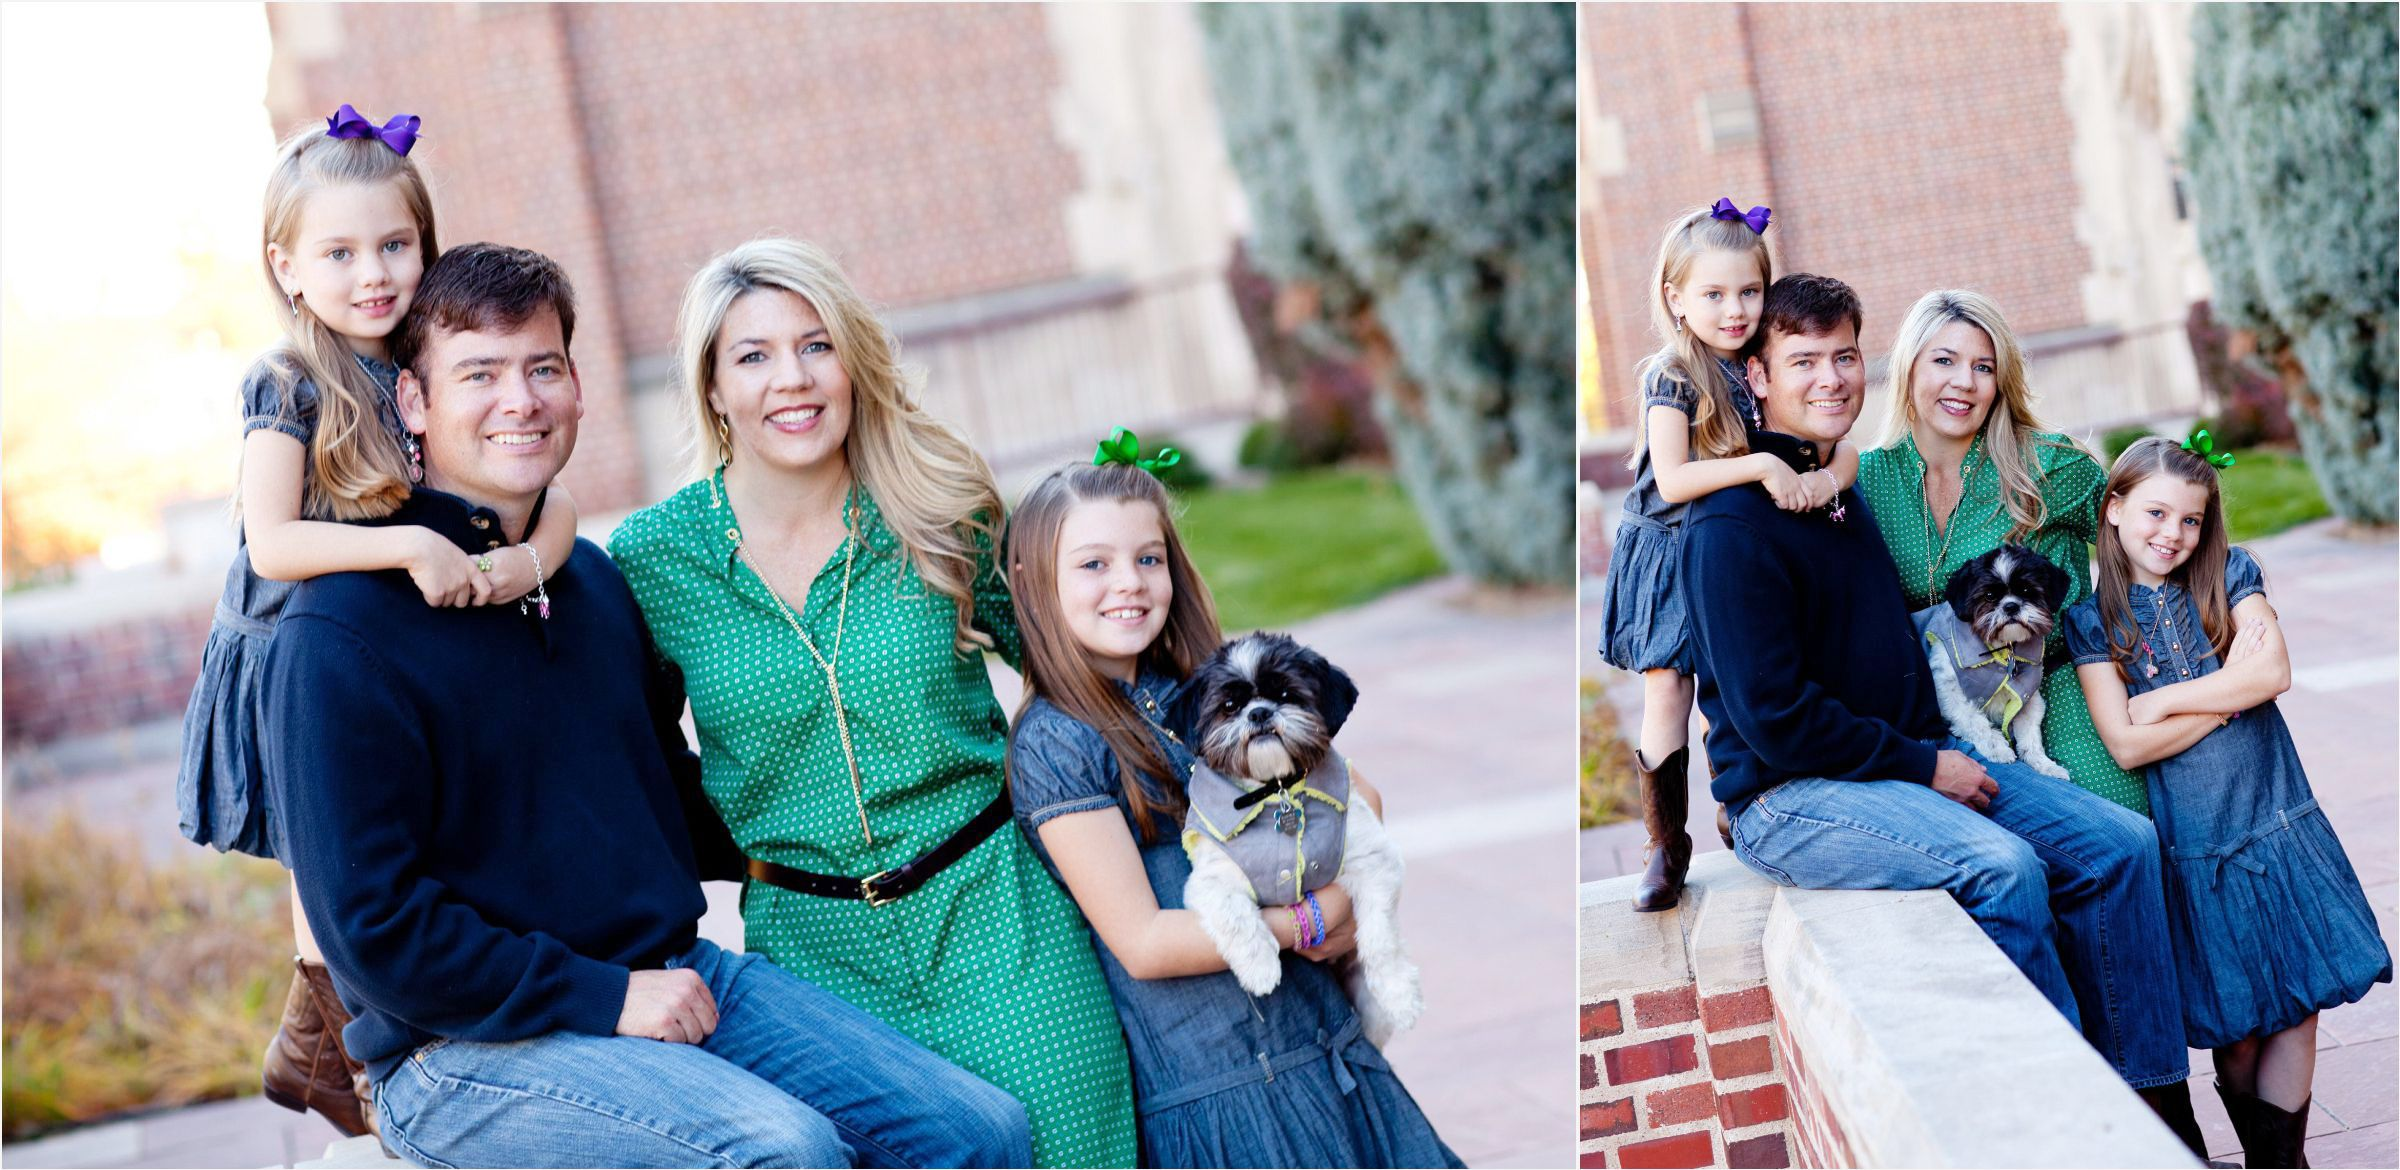 Denver-family-classic-portrait-session-at-university-with-dog-001